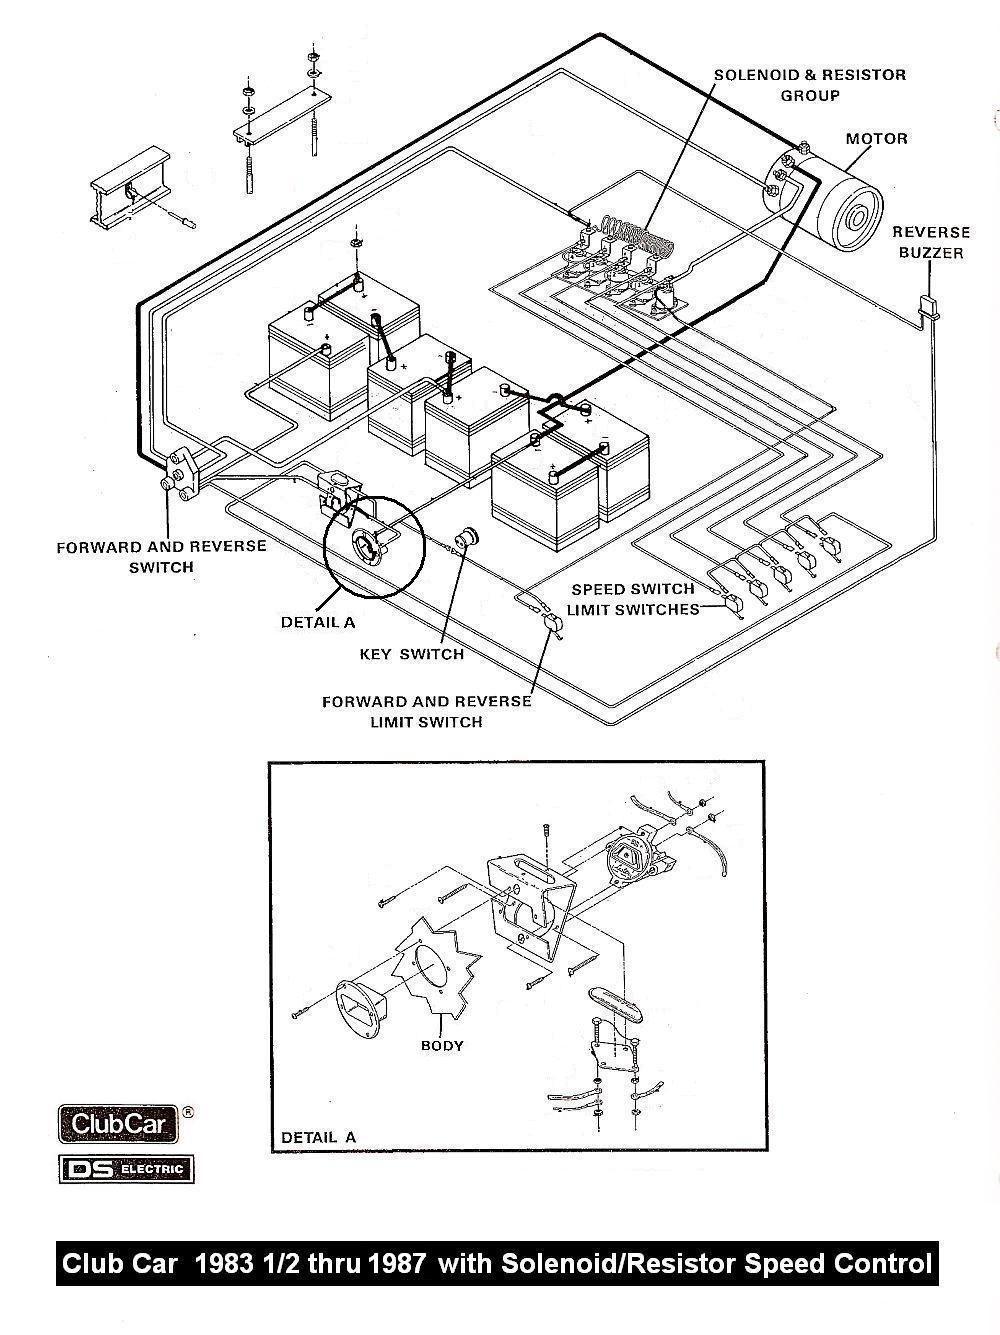 wiring 36 volt 36 volts golf cart cars car wiring diagram electric club car wiring diagrams club car wiring diagram 36 volt club car 1983 1 per thru 1987 solenoid or resistor speed control